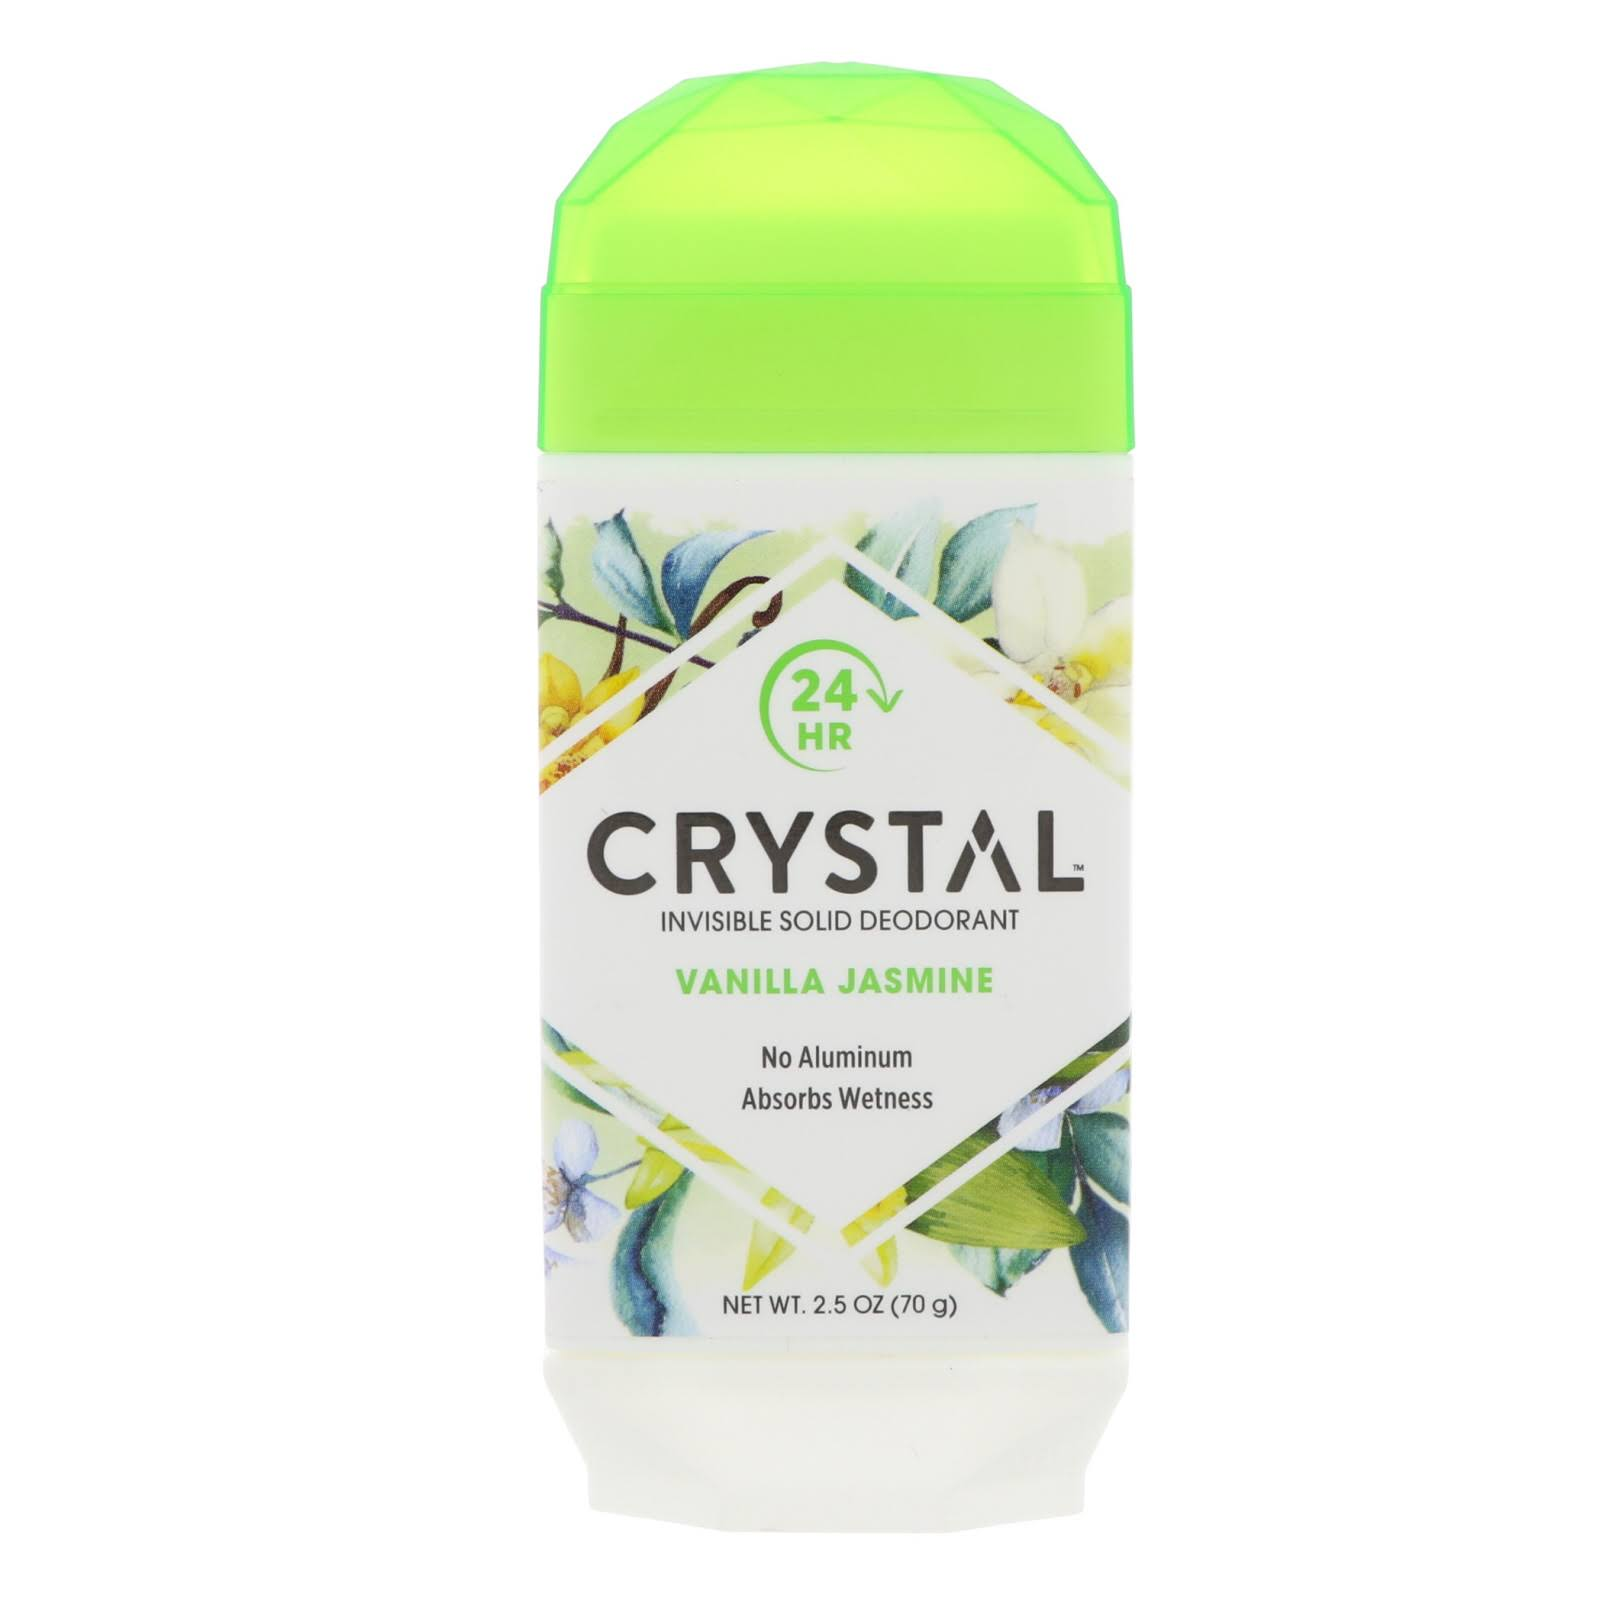 Crystal Deodorant Solid Stick - 2.5oz